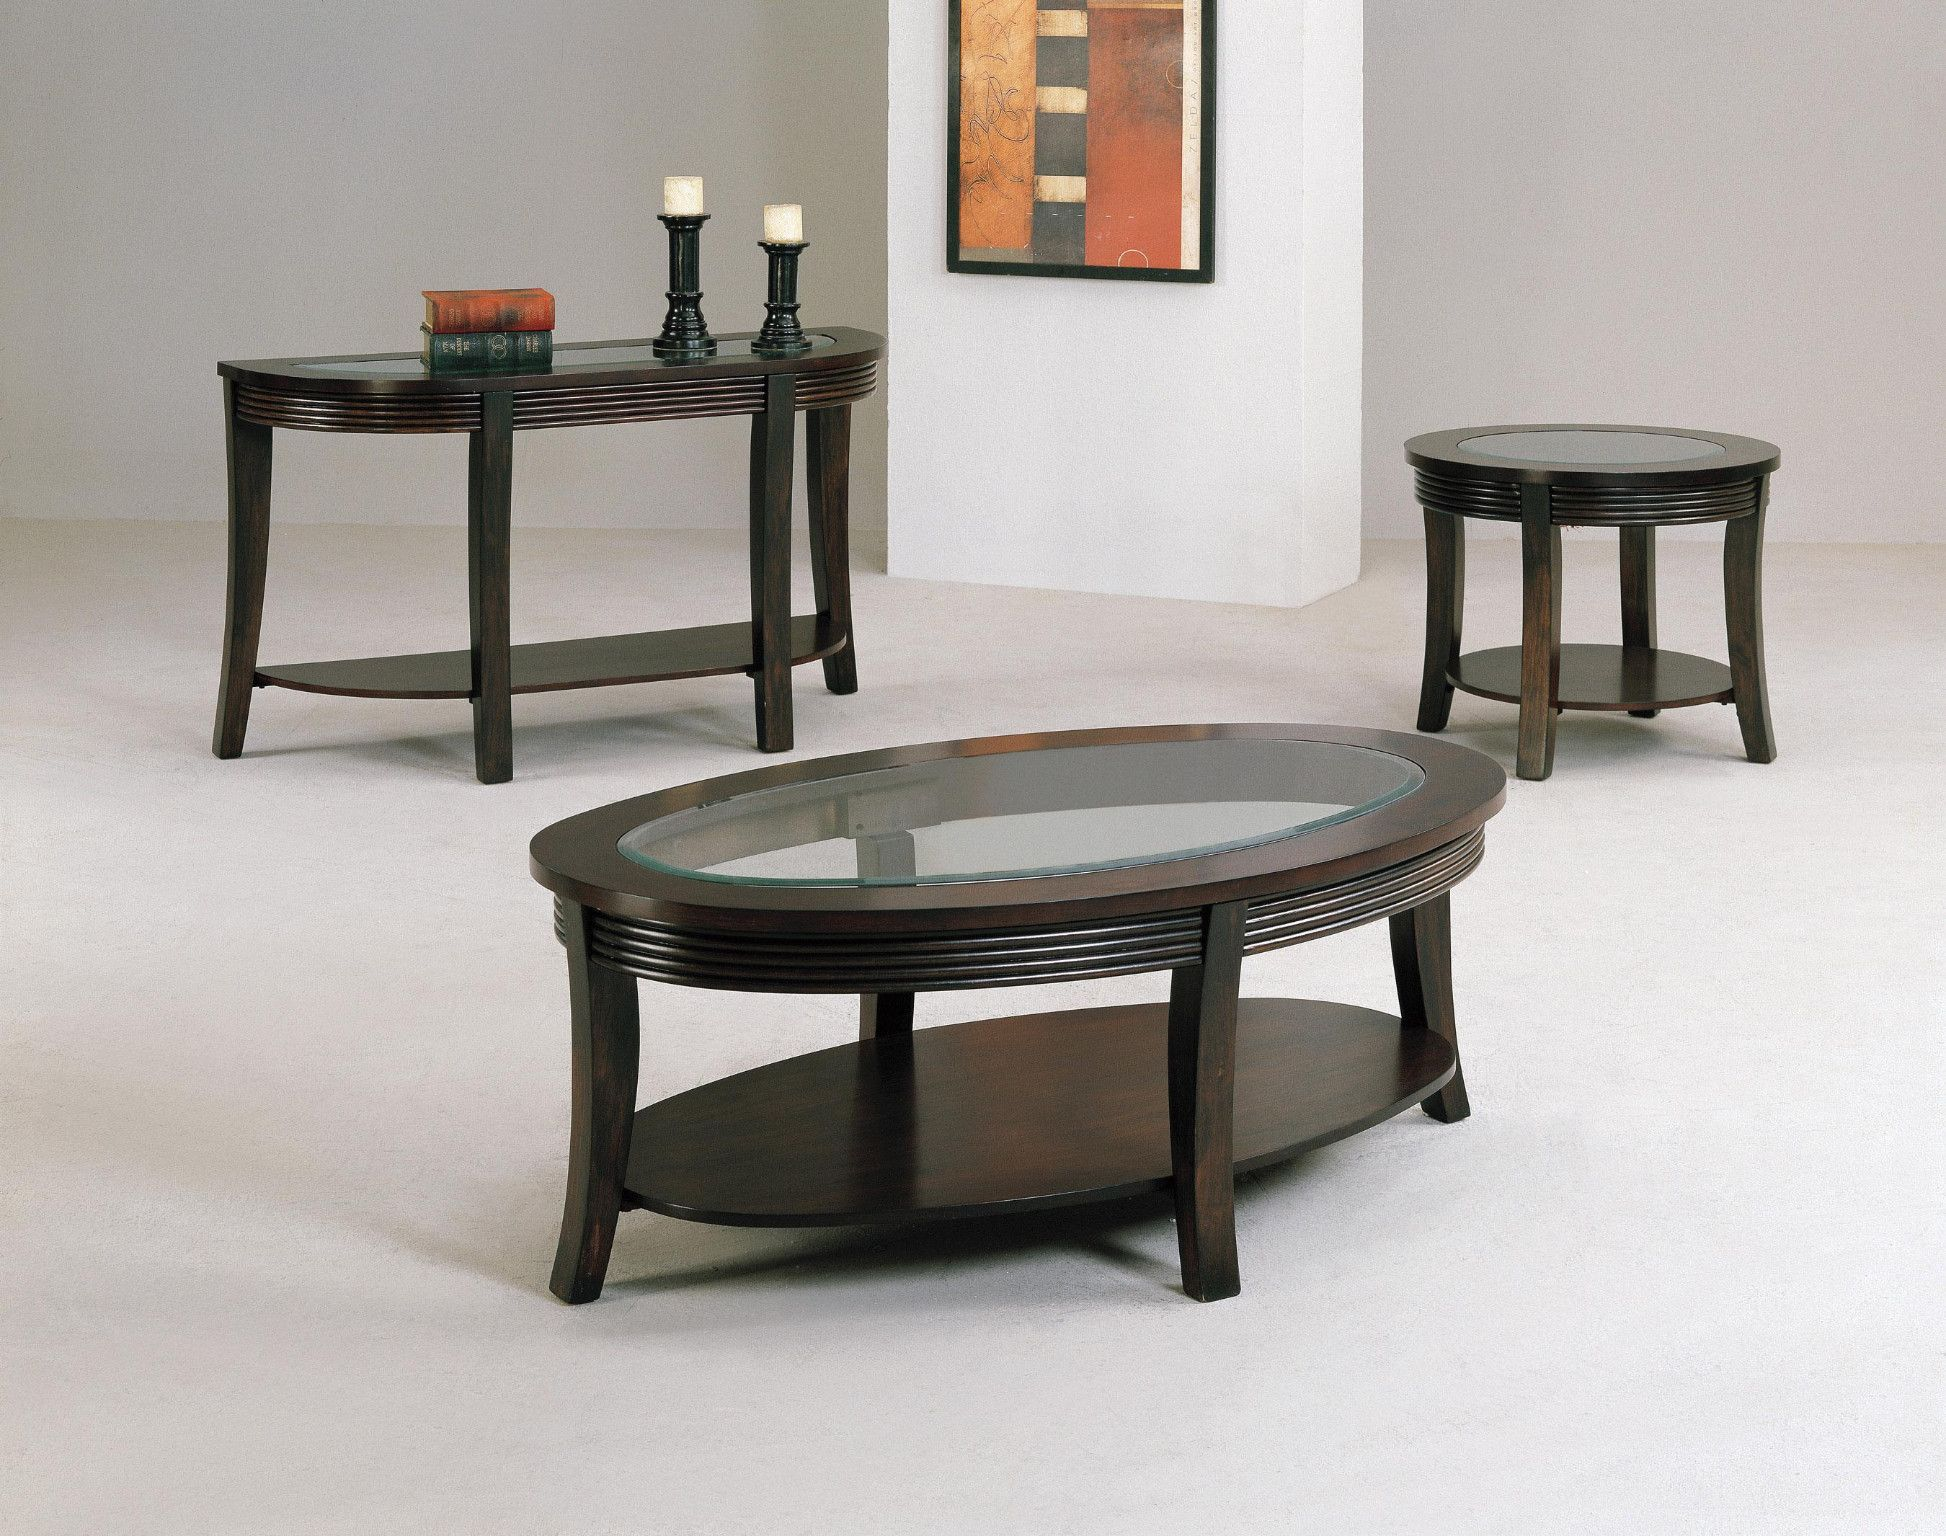 Simone 3 Piece Table Set Coffee And 2 End Tables 399 00 Coffee Table 52 X 32 X 19 25 H End Table 28 D Coffee Table Glass Top Table Table [ 1536 x 1946 Pixel ]